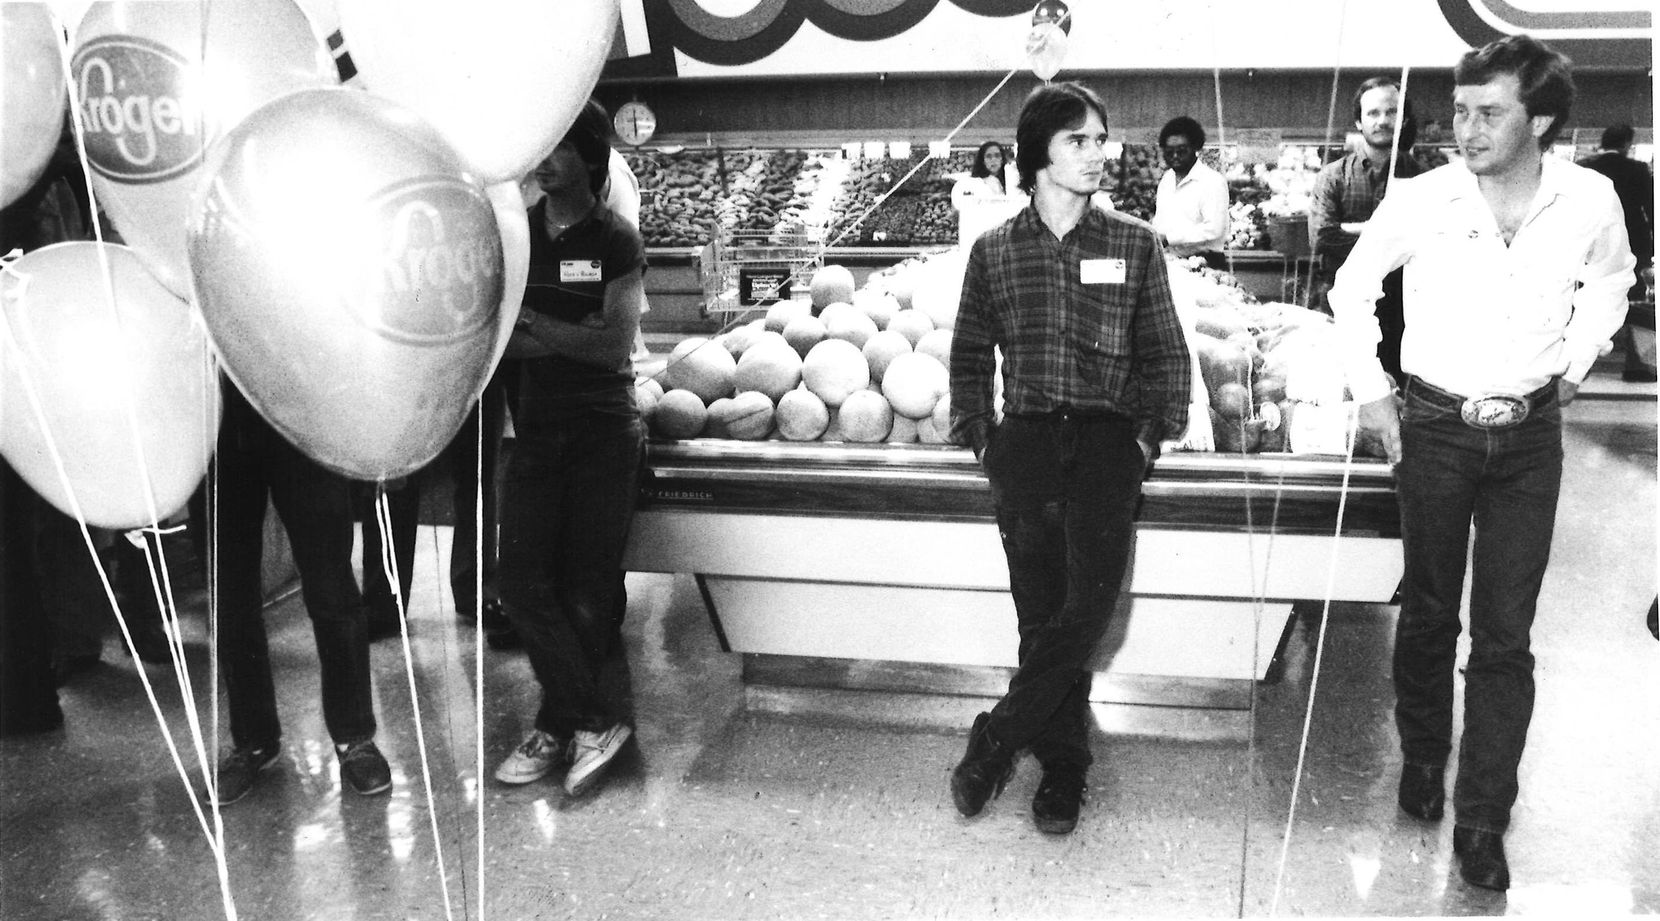 Michael Key (left) scans the produce department with a companion during the mingling period.